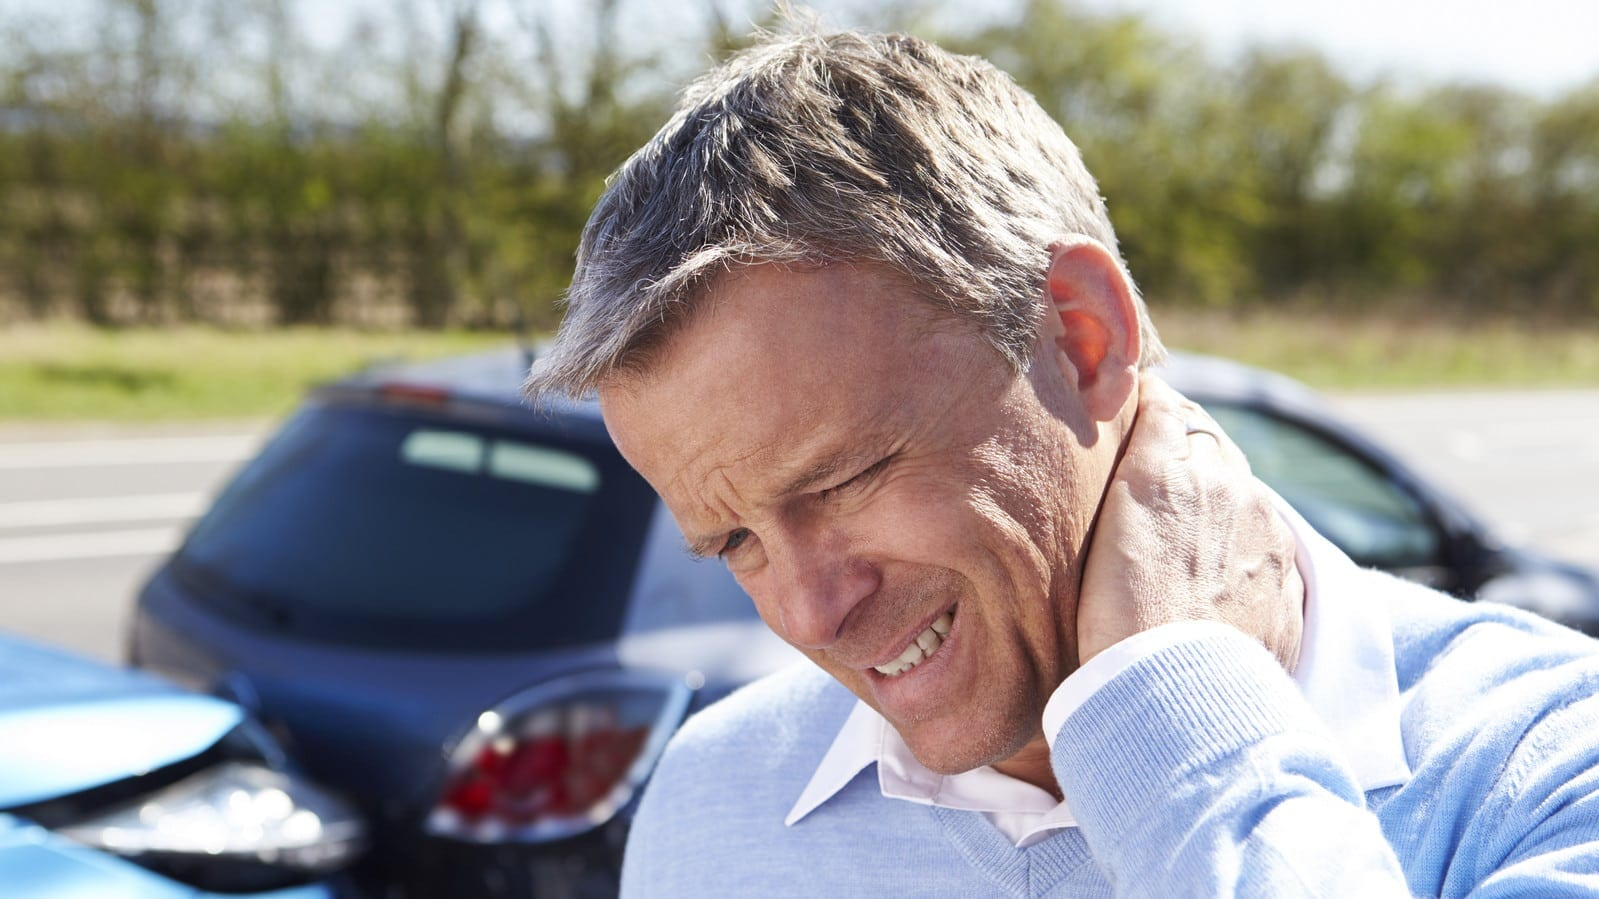 Man With Neck Pain After Rear End Car Accident Stock Photo